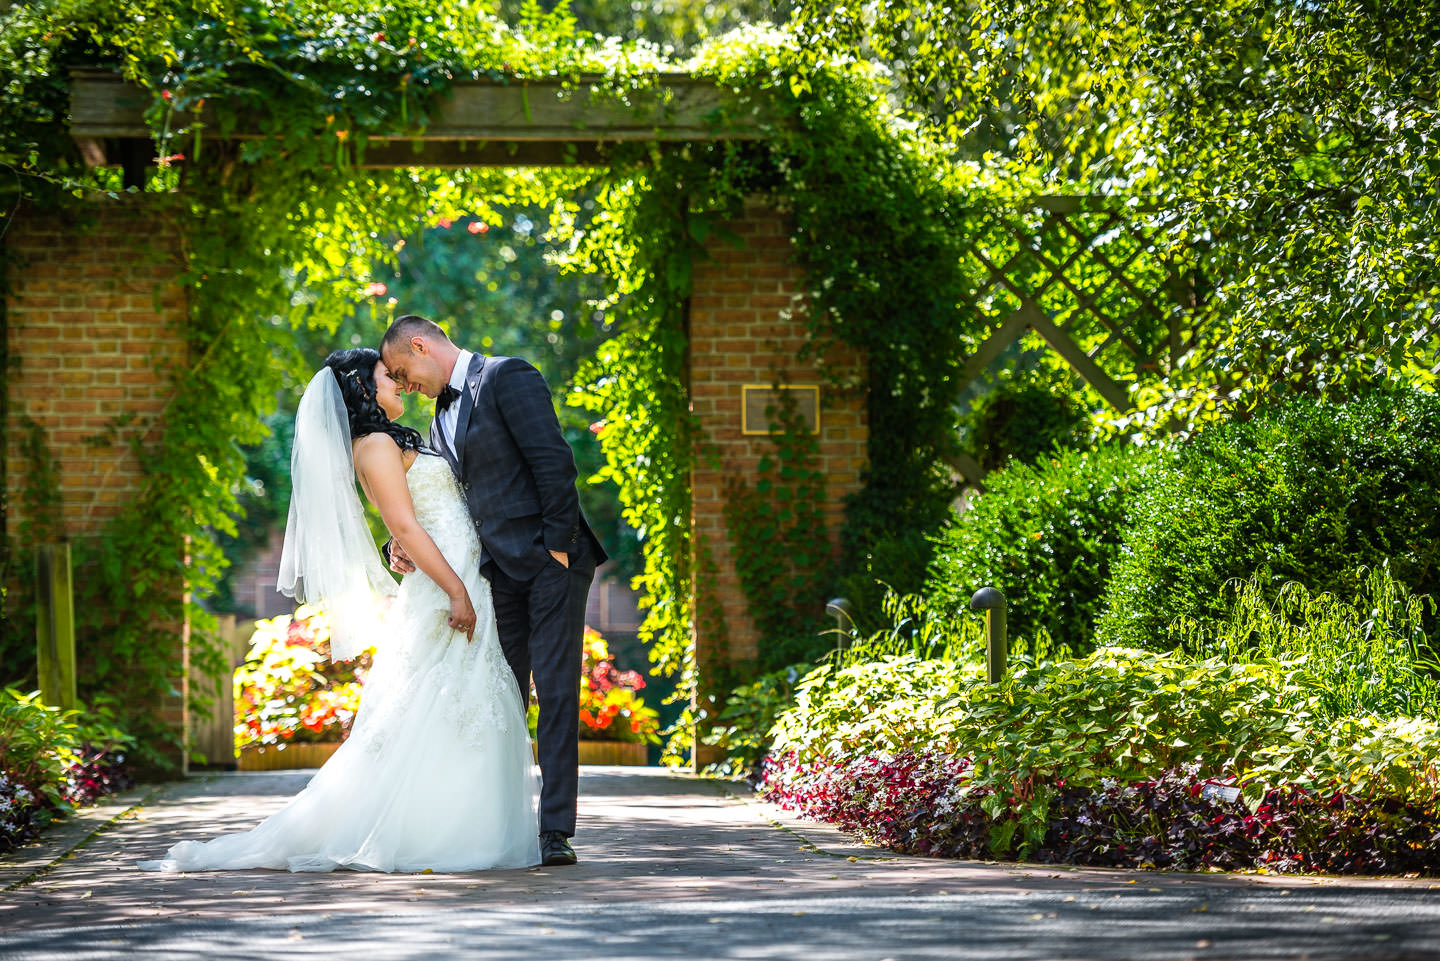 bride and groom in botanical gardens in summer with flowers and trees